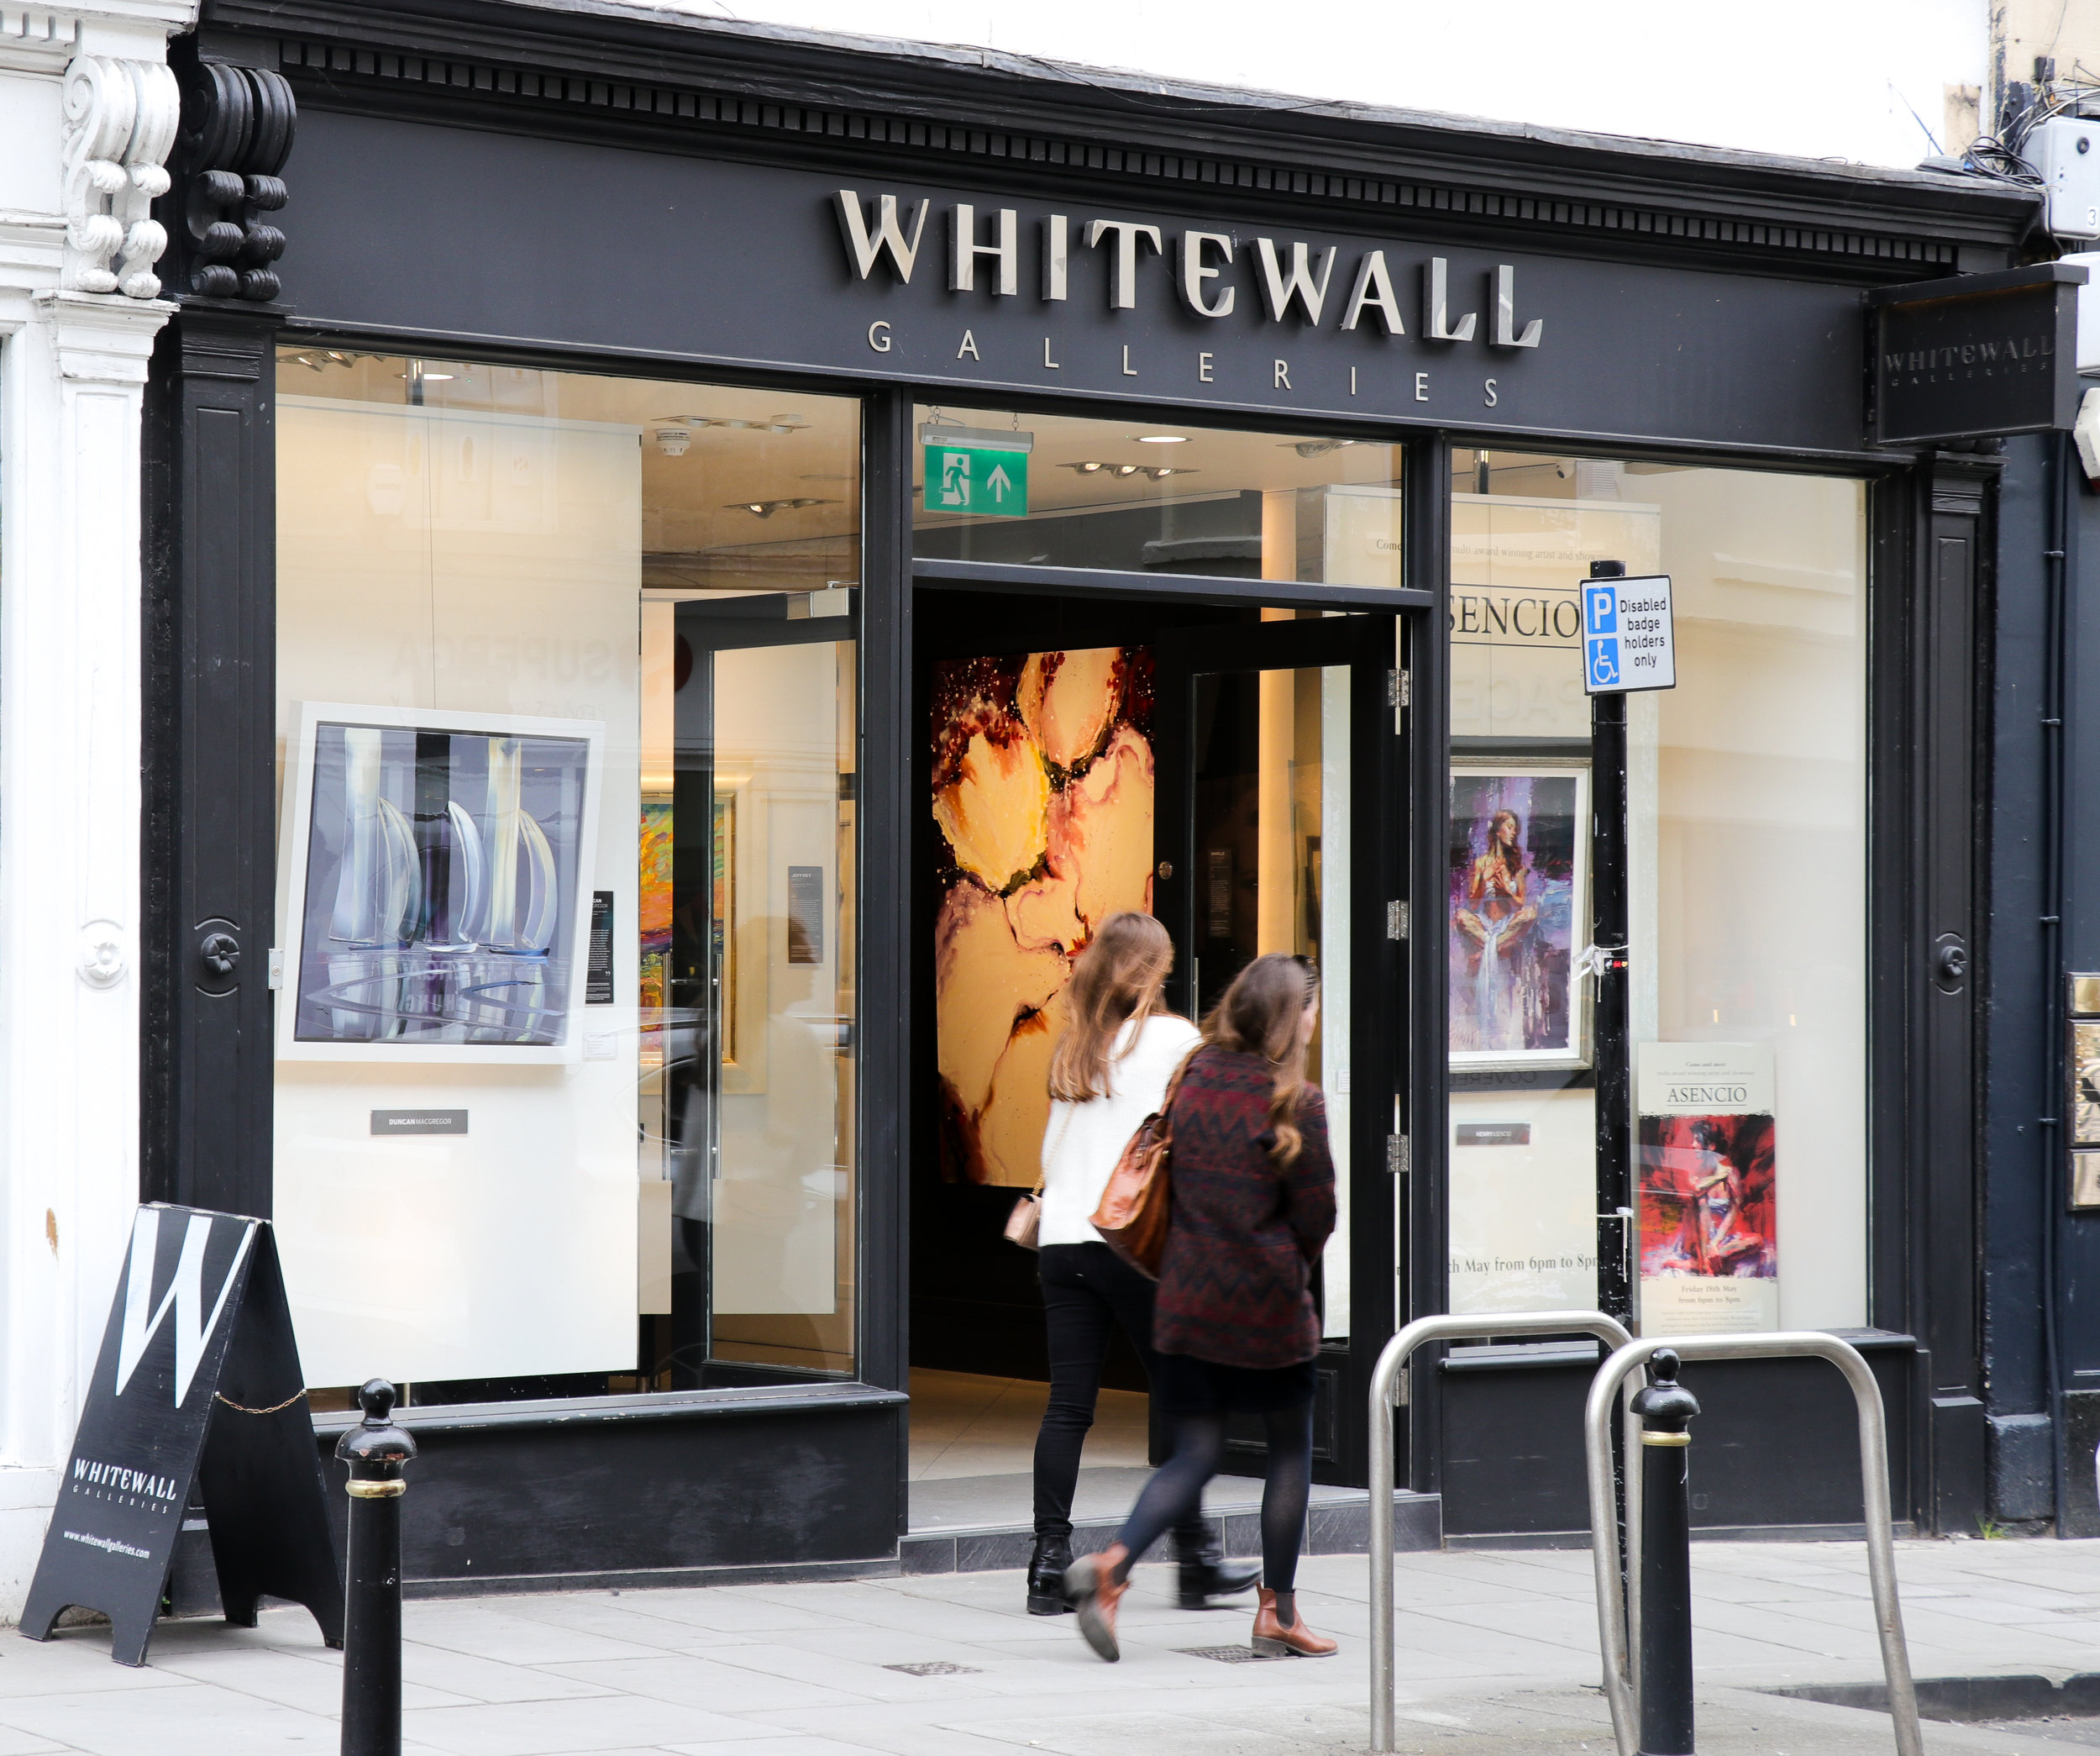 Whitewall Galleries Bath.jpg